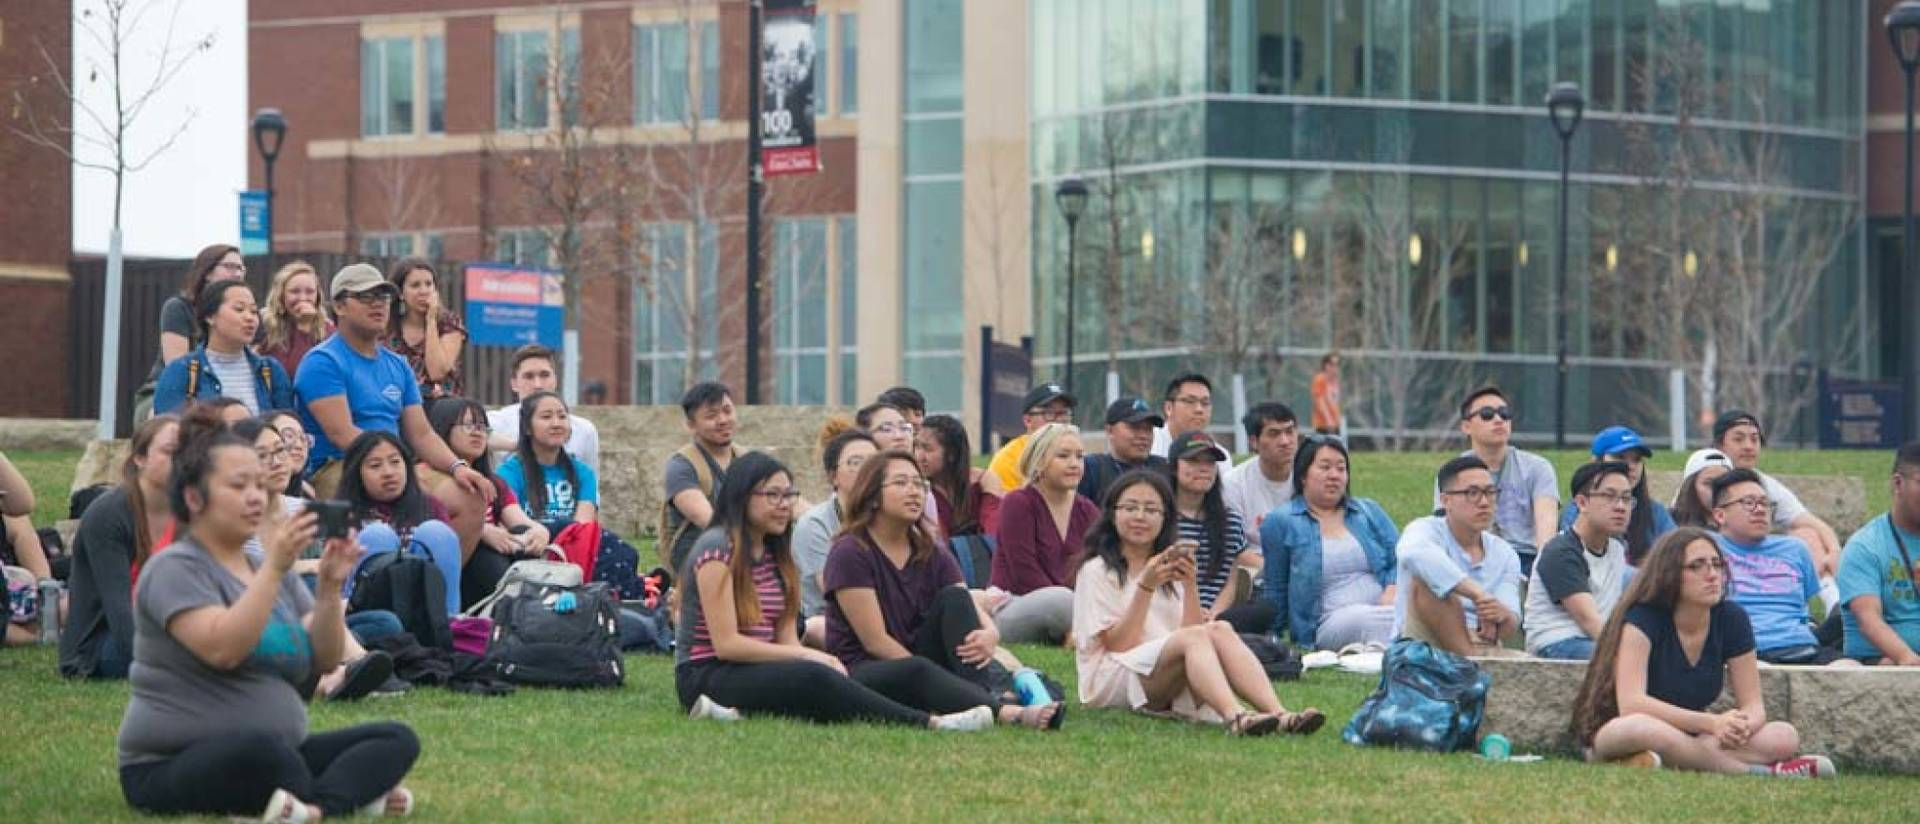 At the 2018 Asian Pacific Islander American Heritage Month celebration, groups of students and community members gathered to enjoy music, dancing and martial arts demonstrations on the campus mall.